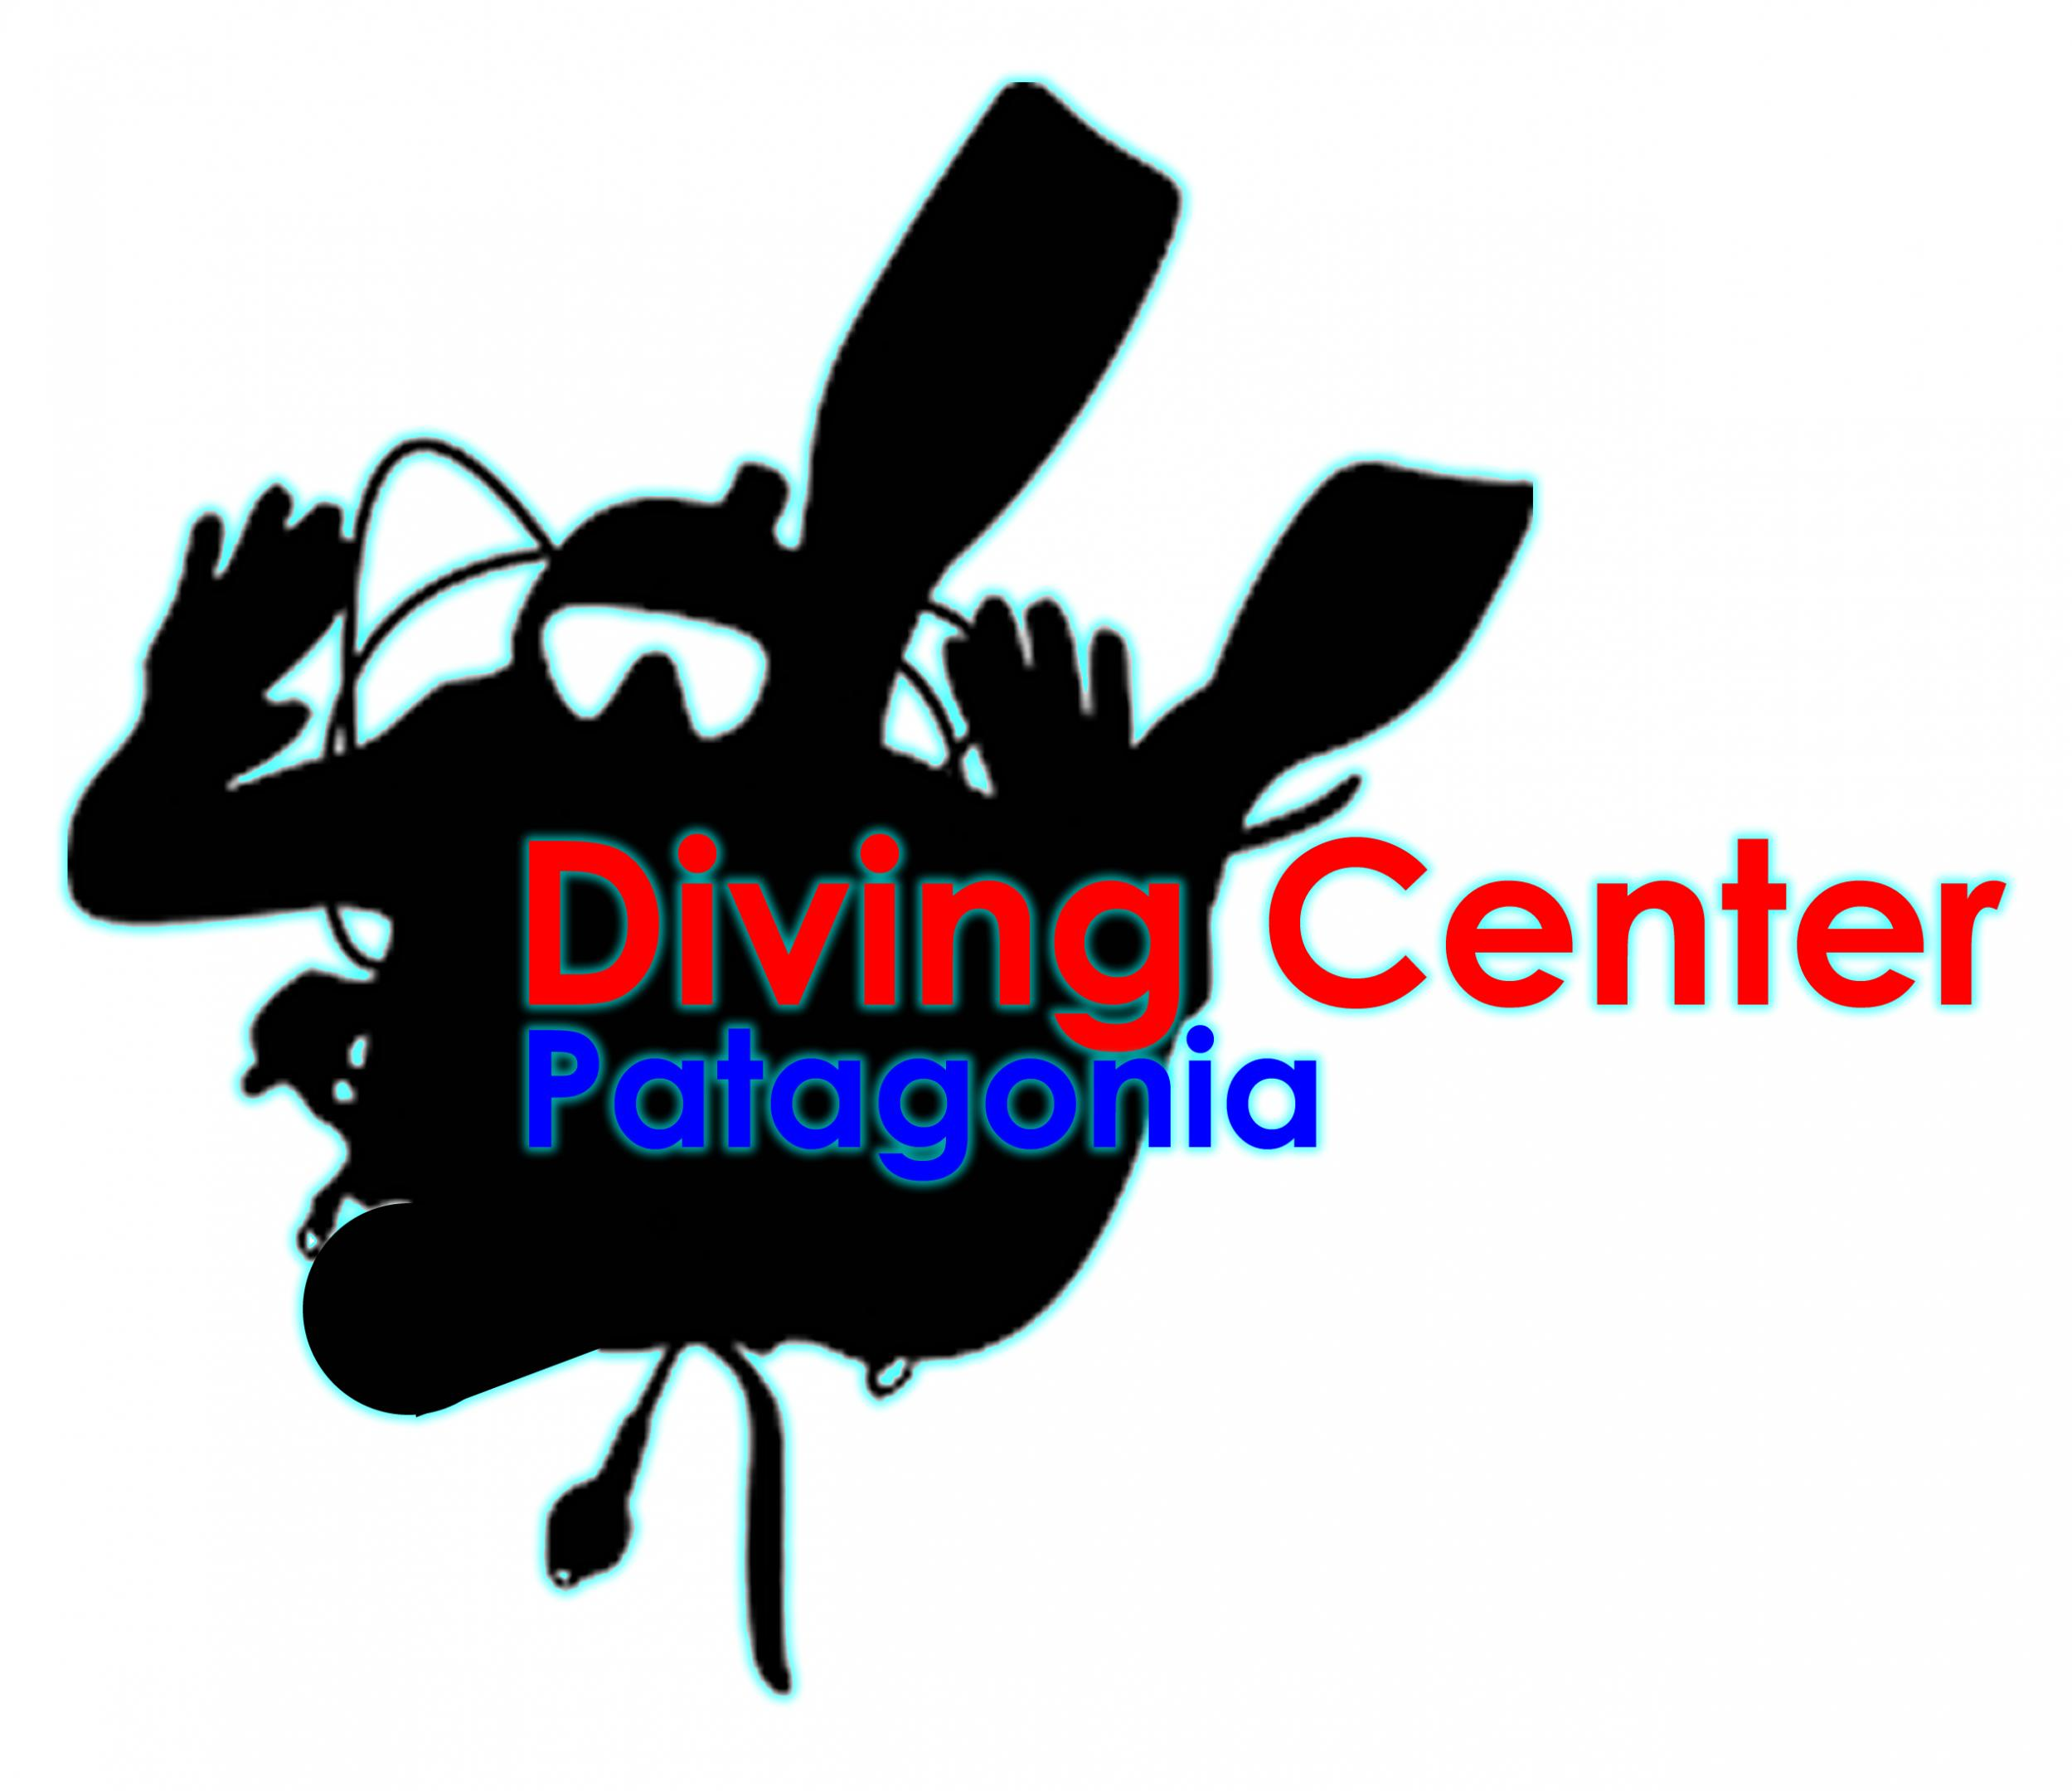 Diving Center Patagonia AECL-004 logo